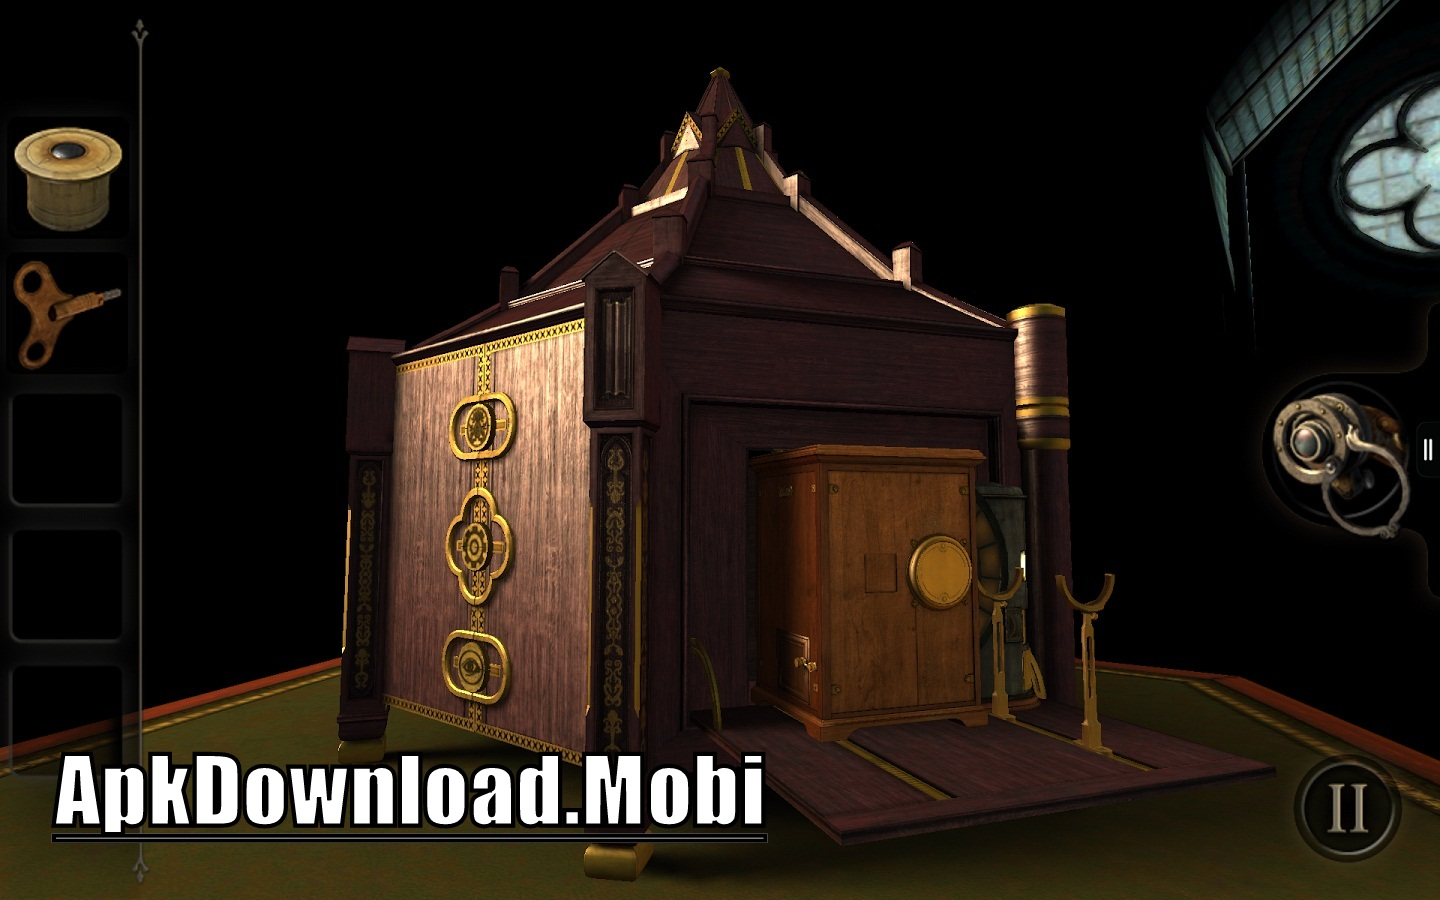 Room Apk RoidDownload